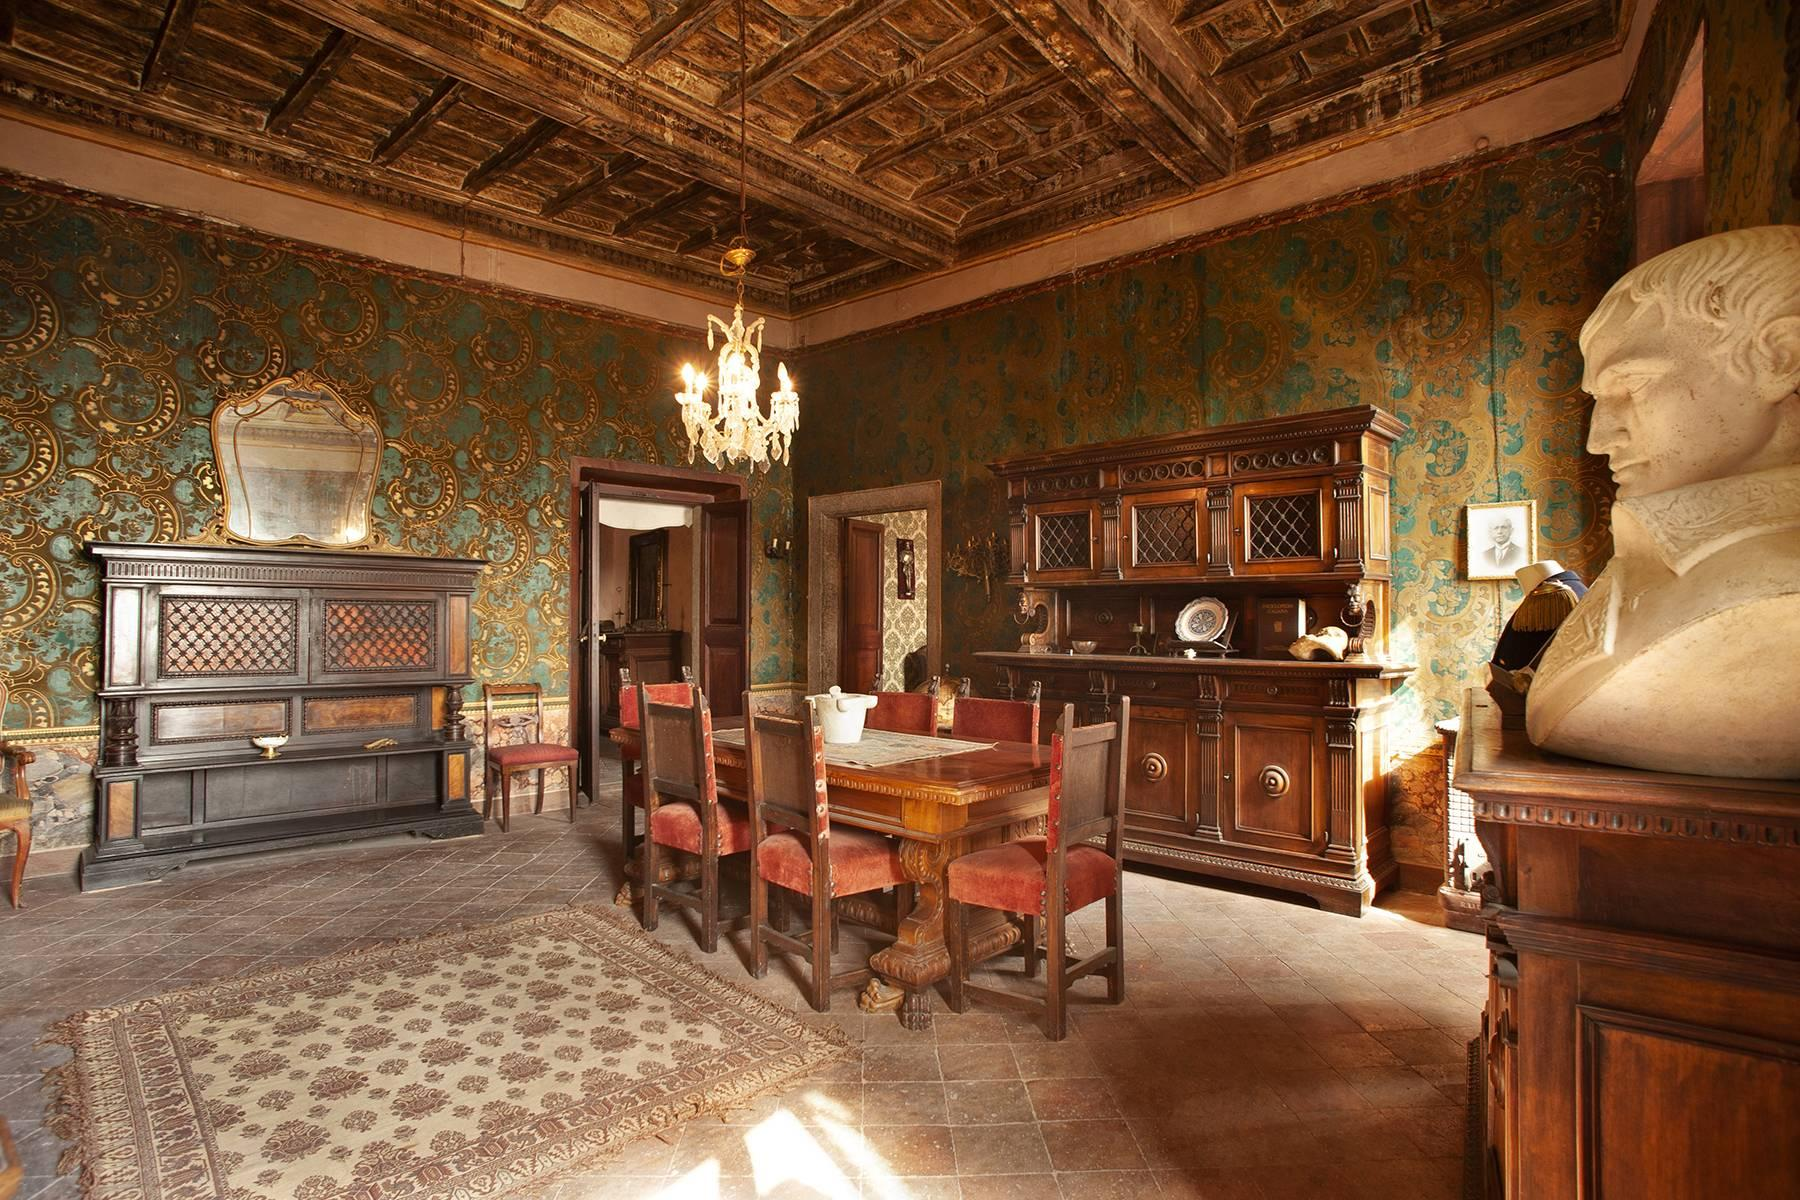 Historic Mansion in the countryside near Rome - 8